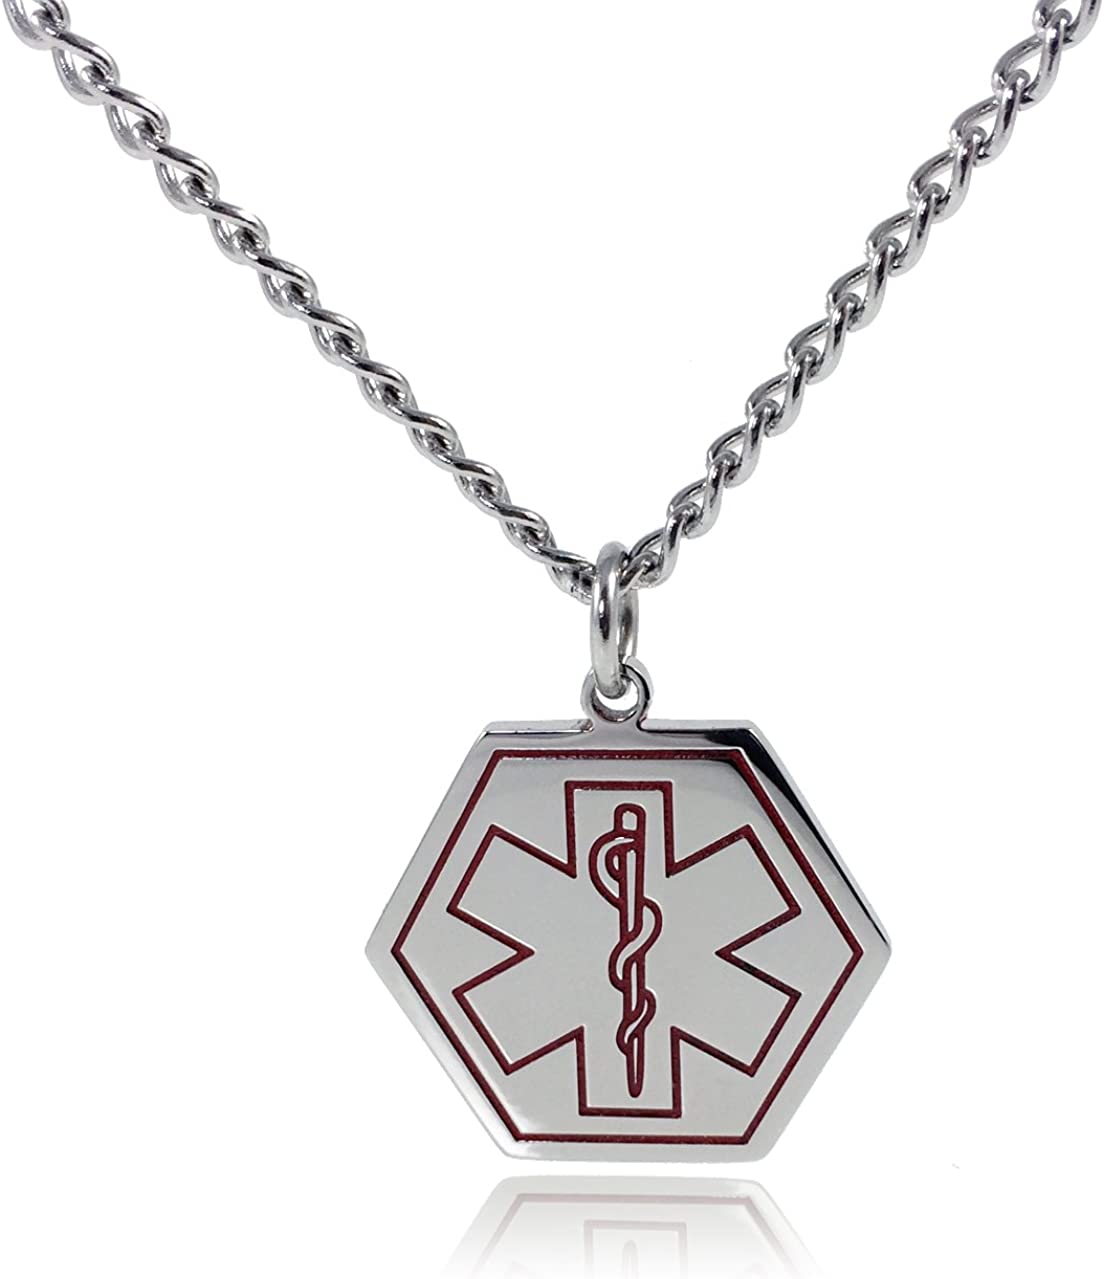 Max Petals Type 2 Diabetes Necklace Medical Alert ID Stainless Steel Pendant with 26